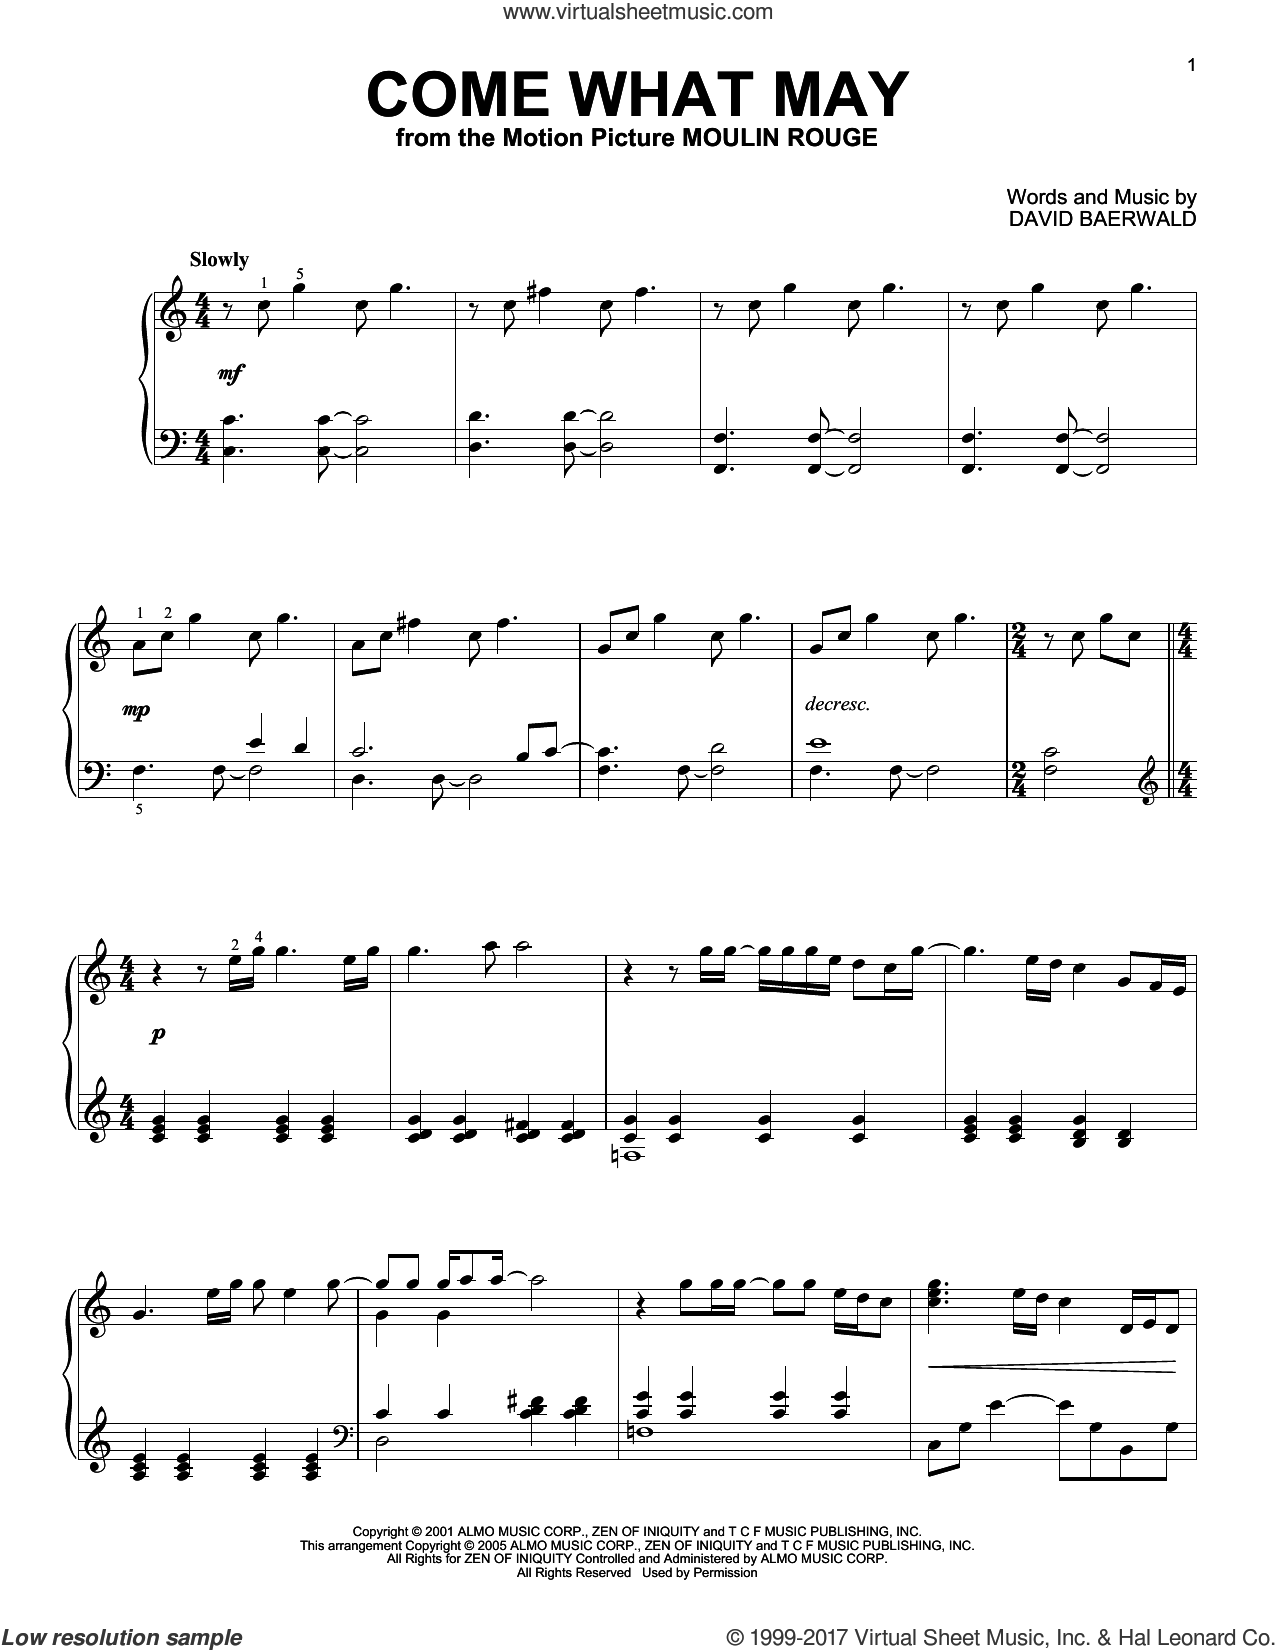 Come What May (from Moulin Rouge) sheet music for piano solo by Nicole Kidman and Ewan McGregor, Ewan McGregor, Moulin Rouge (Movie), Nicole Kidman and David Baerwald, intermediate skill level